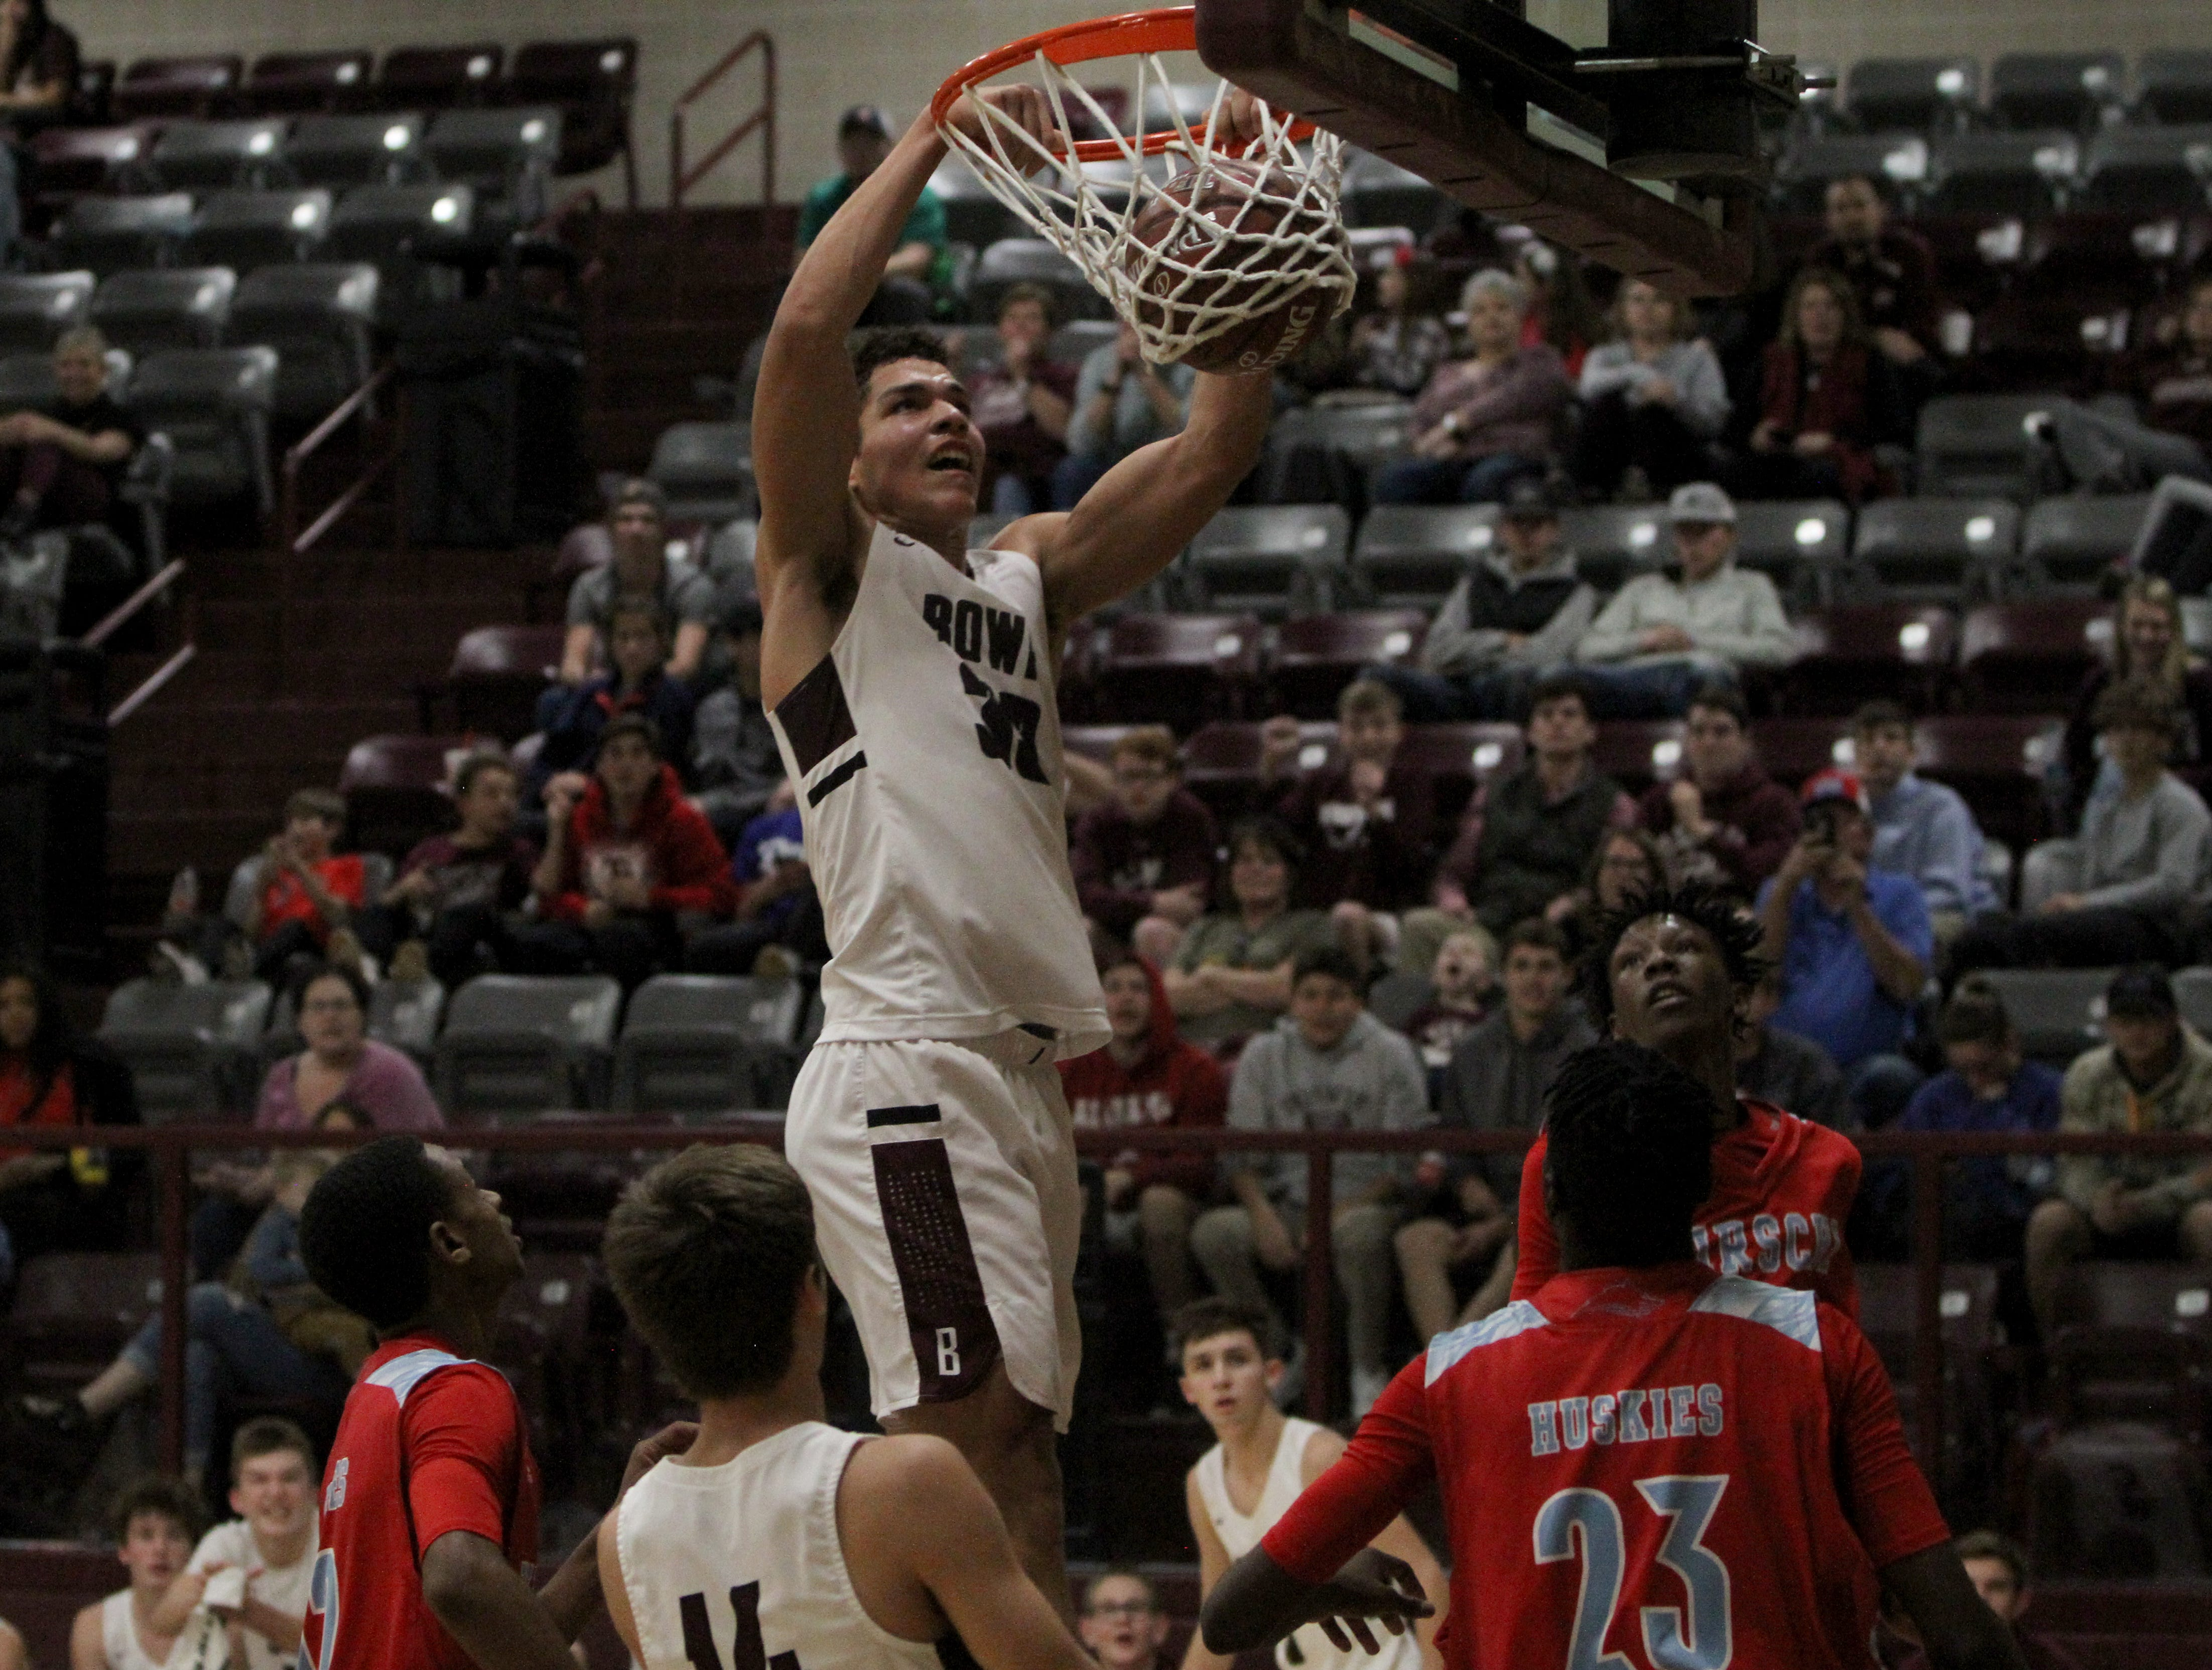 Bowie's Daniel Mosley dunks in the game against Hirschi Tuesday, Nov. 27, 2018, in Bowie. The Jackrabbits defeated the Huskies 67-53.